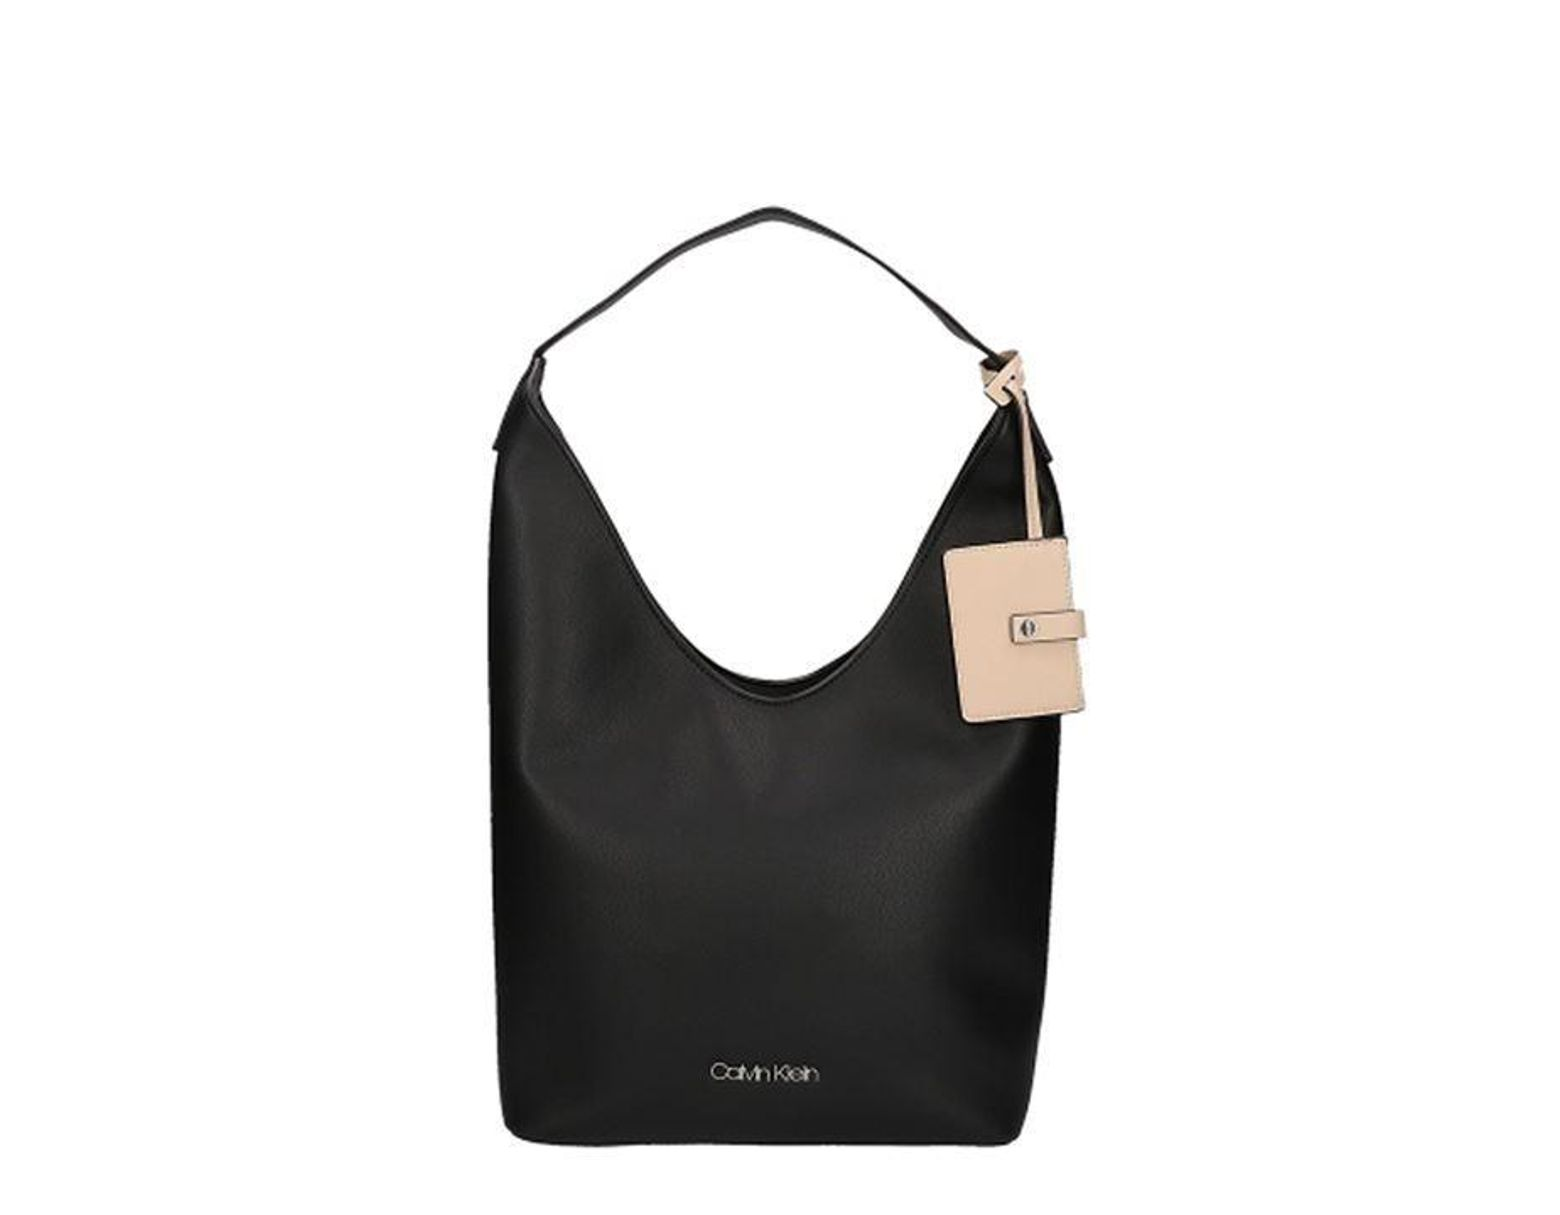 faa14a5353 Calvin Klein Ck Tack S Hobo Ld92 in Black - Lyst